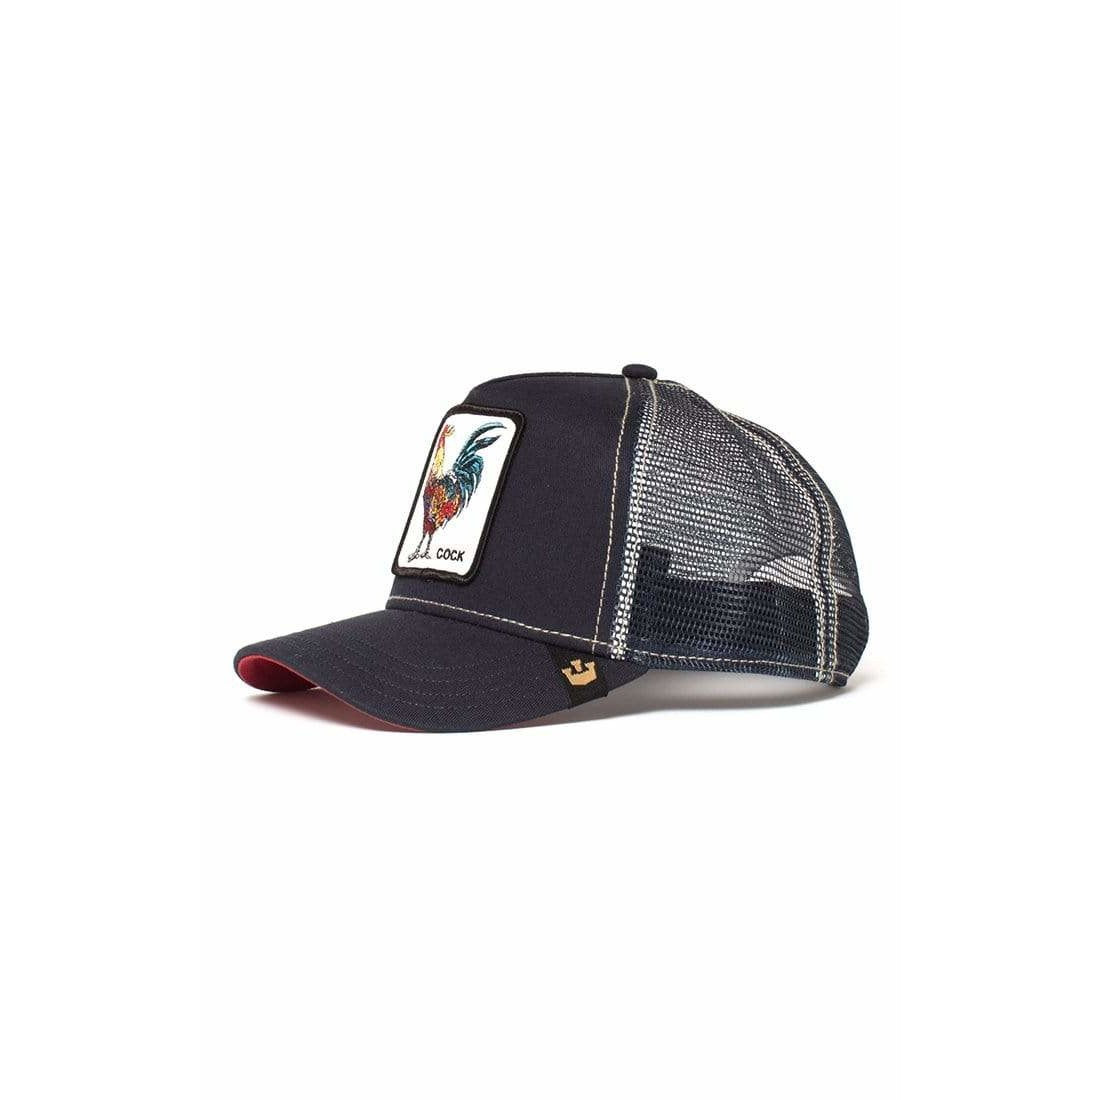 Goorin BLACK / N/S Goorin Gallo Trucker Hat